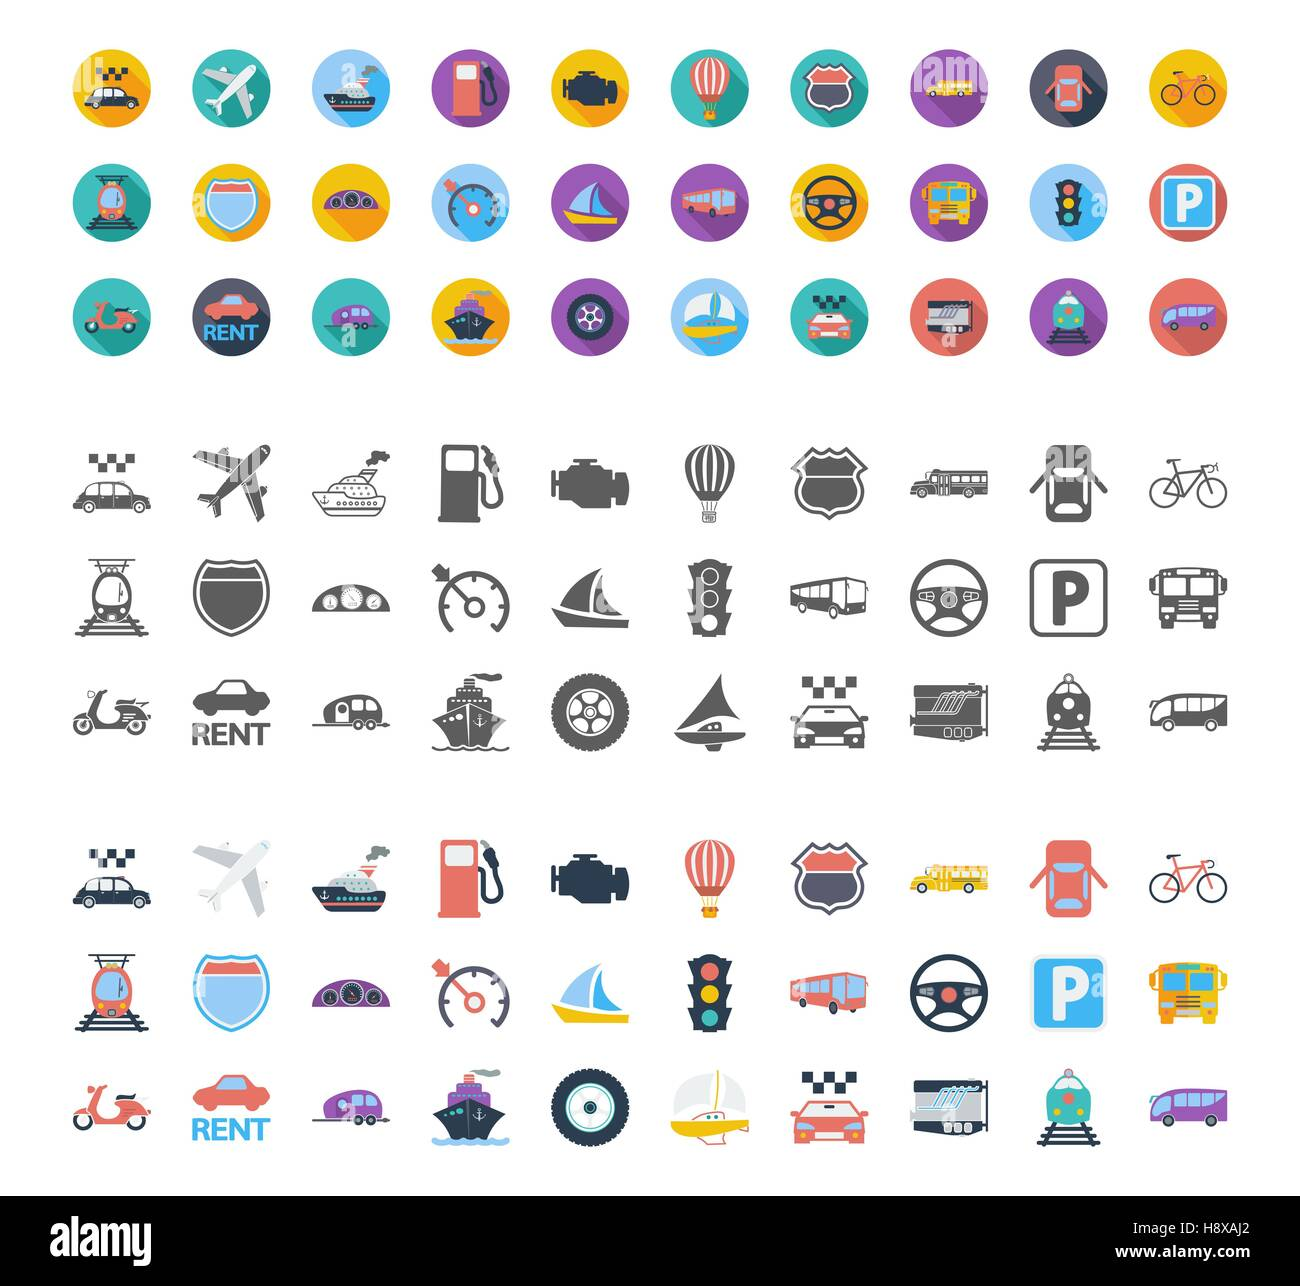 Transportation icons set. Les différents styles télévision vector icons set pour le web et les applications Photo Stock